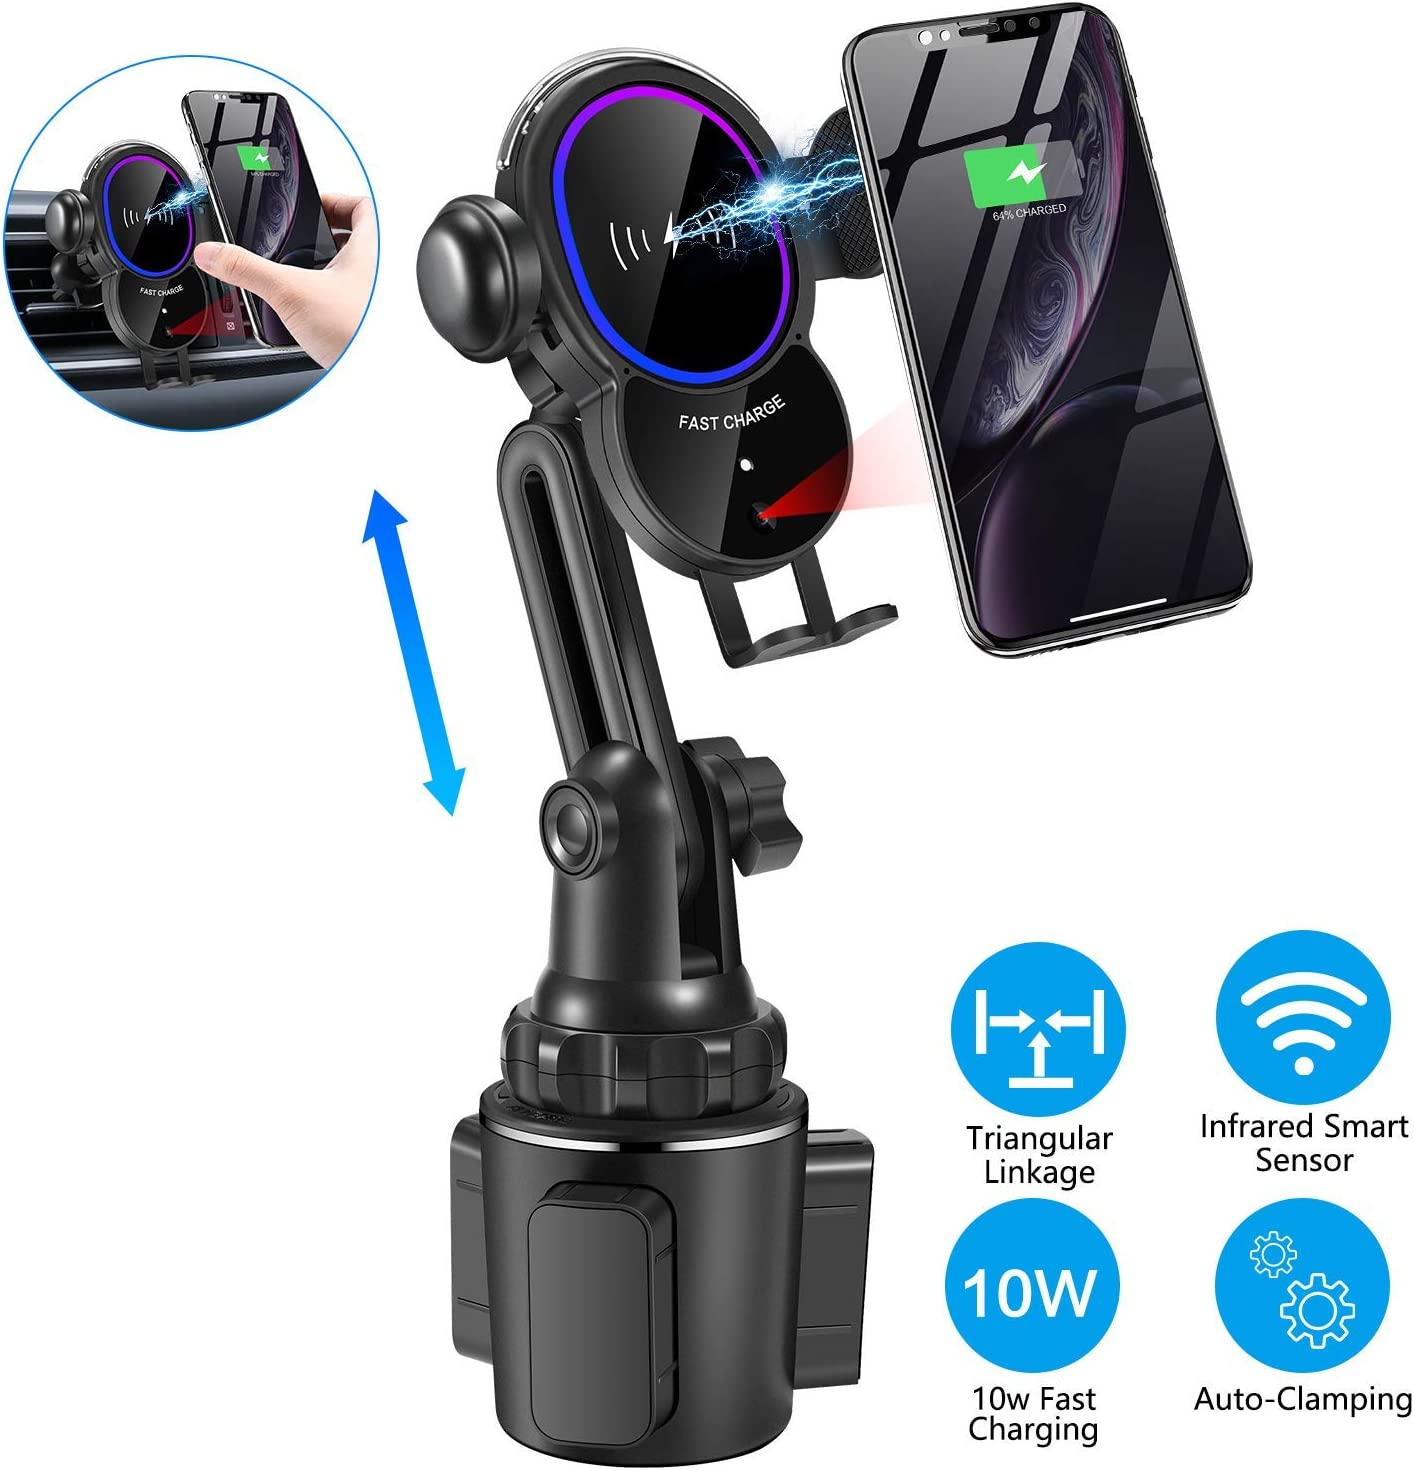 Car Cup Phone Holder Wireless Car Charger Mount NeotrixQI Auto Clamping Qi Fast Charging Cup Holder Phone Mount 7.5W for iPhone Xs Max//XR//Xs//X//8 Plus 10W for Samsung Galaxy S9 //S8 Plus